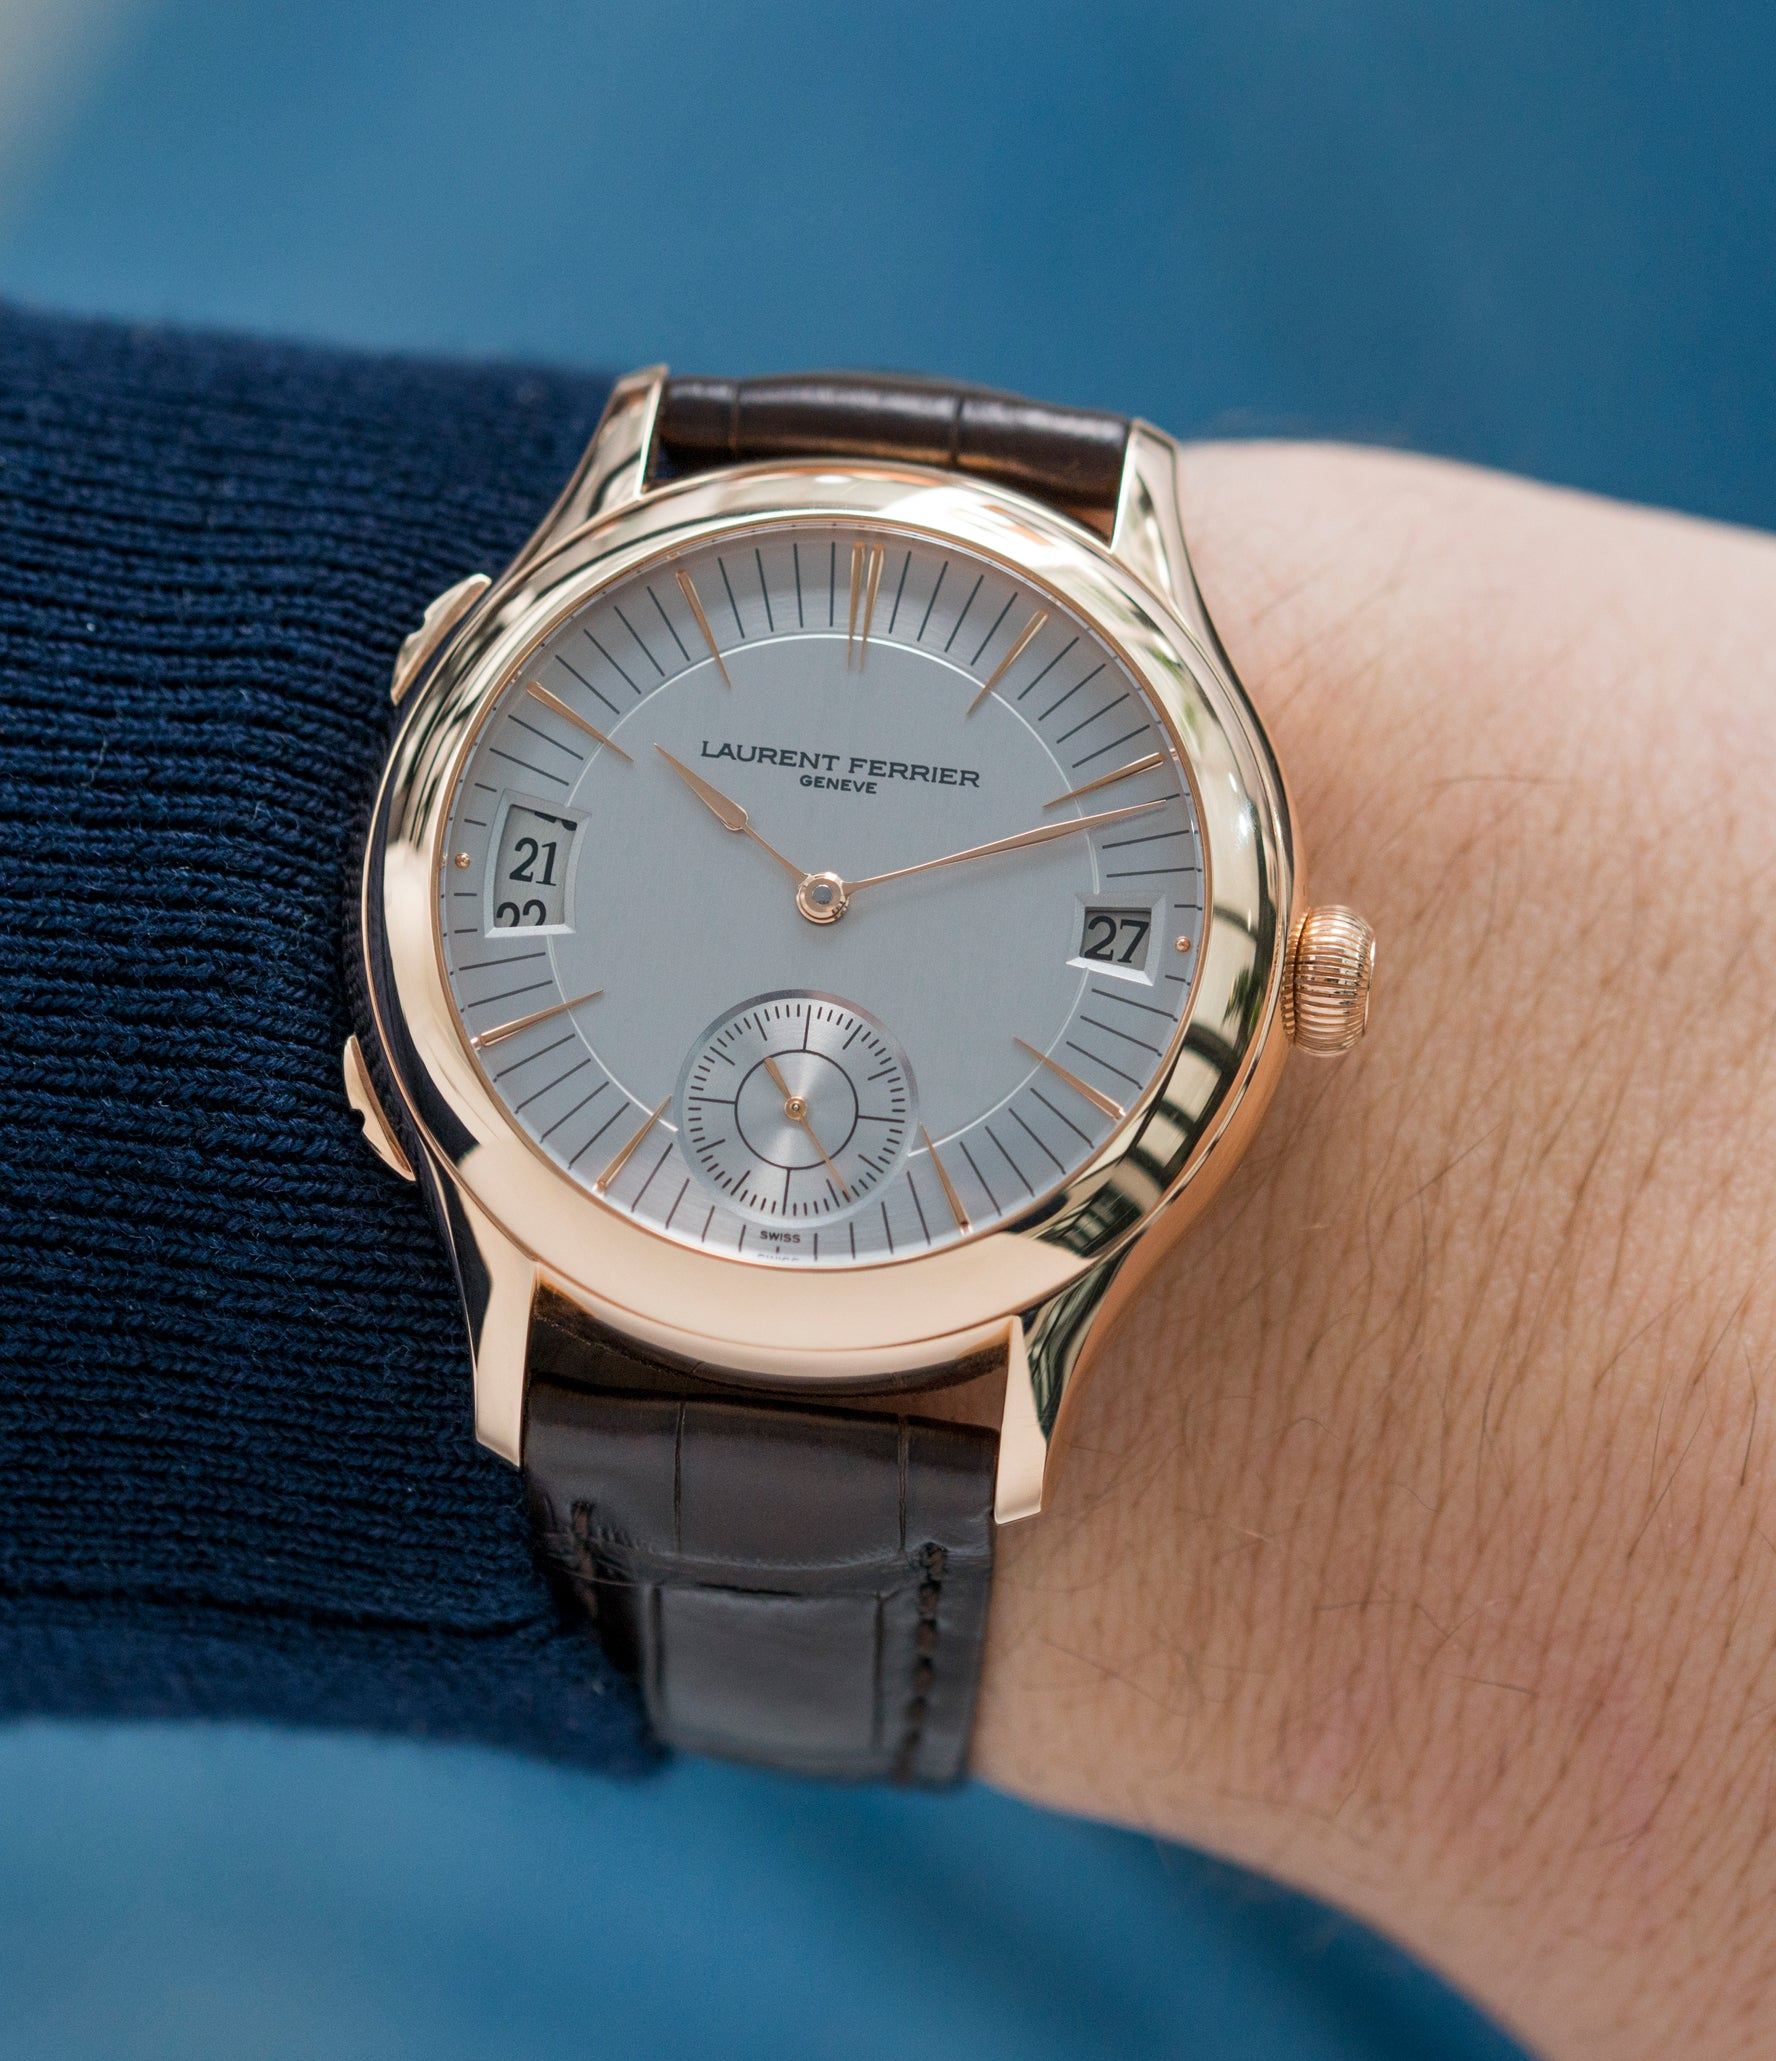 men's luxury wristwatch Laurent Ferrier Galet Traveller Micro Rotor LF 230.01 rose gold watch additional prototype dial for sale online at A Collected Man London UK approved reseller of preowned independent watchmakers